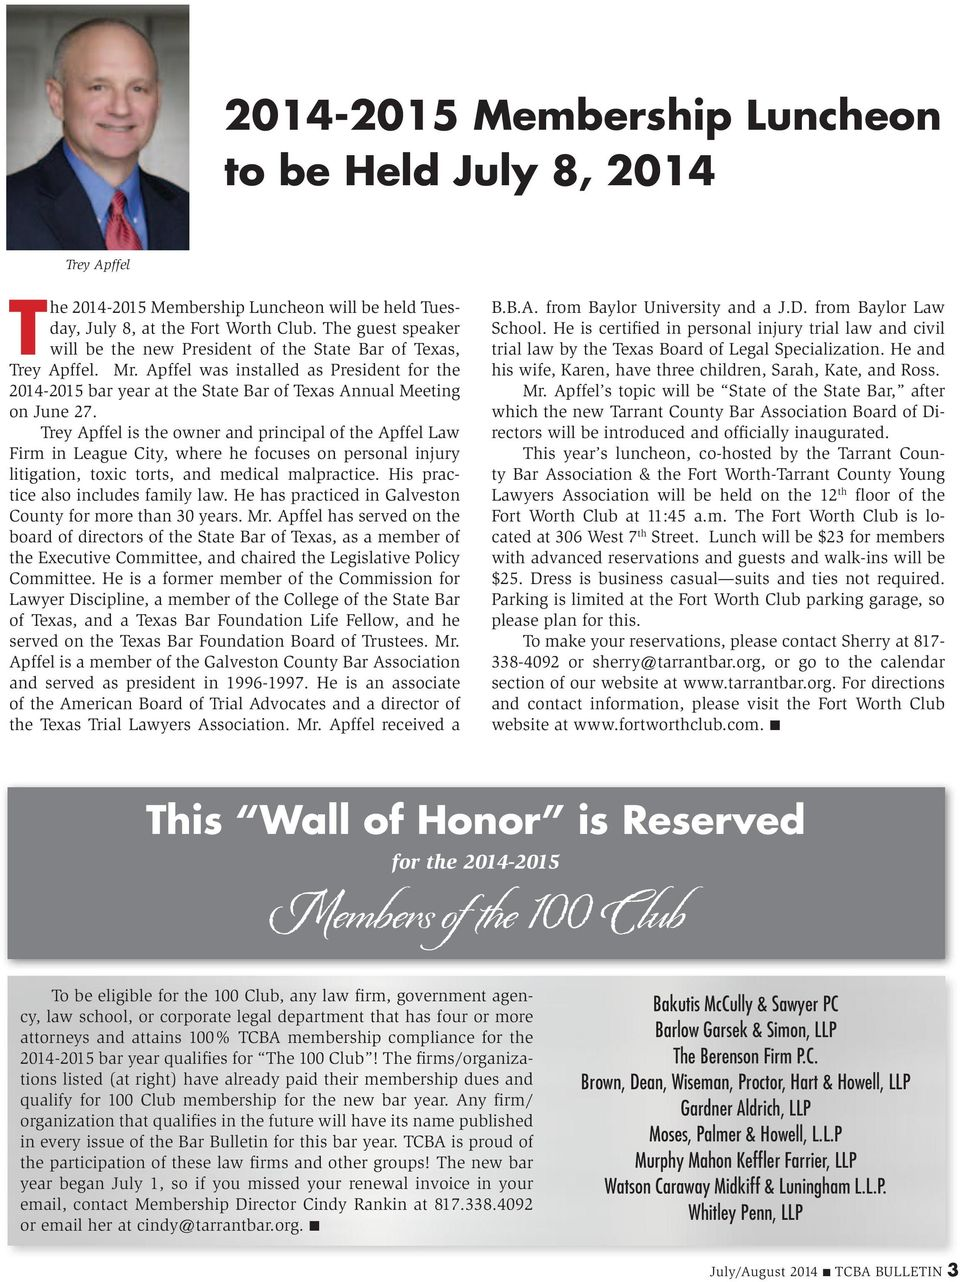 Apffel was installed as President for the 2014-2015 bar year at the State Bar of Texas Annual Meeting on June 27.